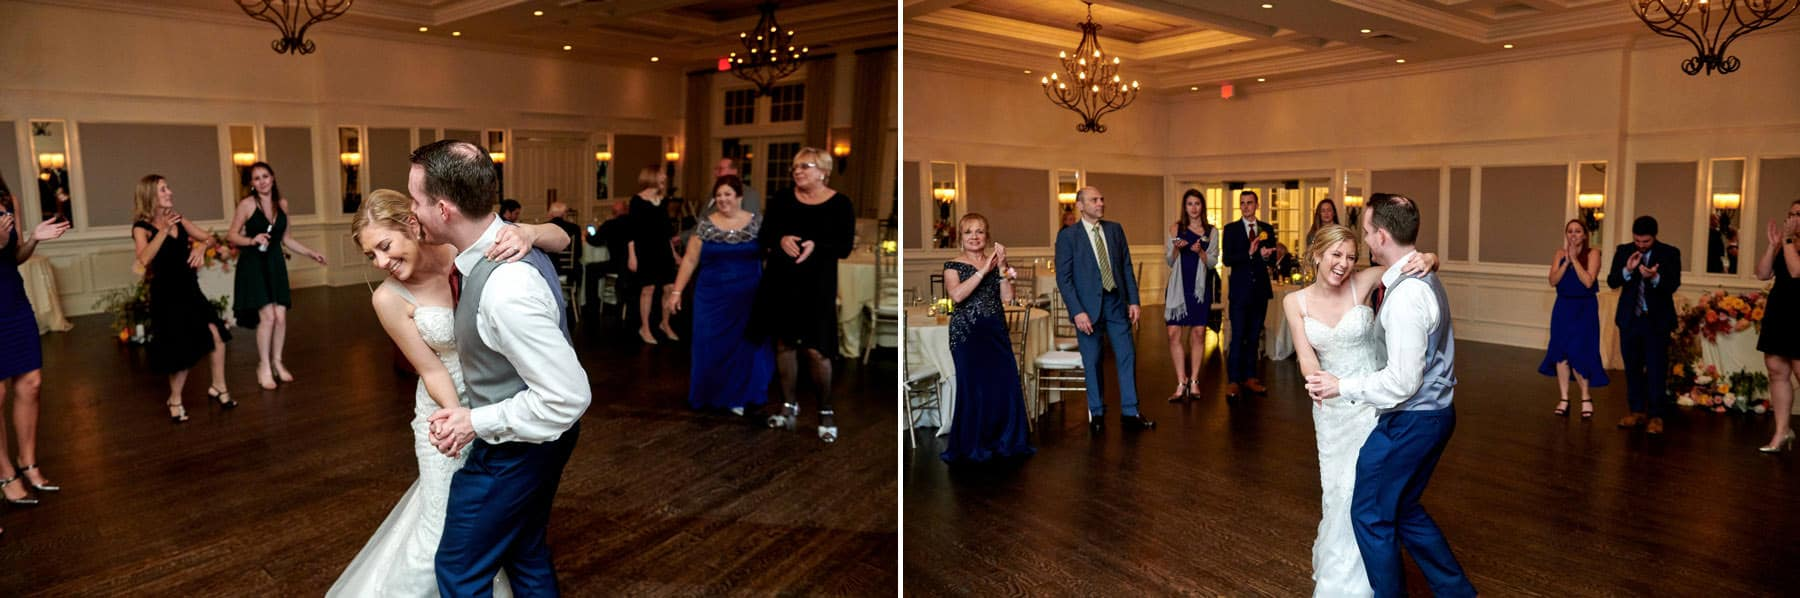 last wedding dance photos at French Creek Golf Club